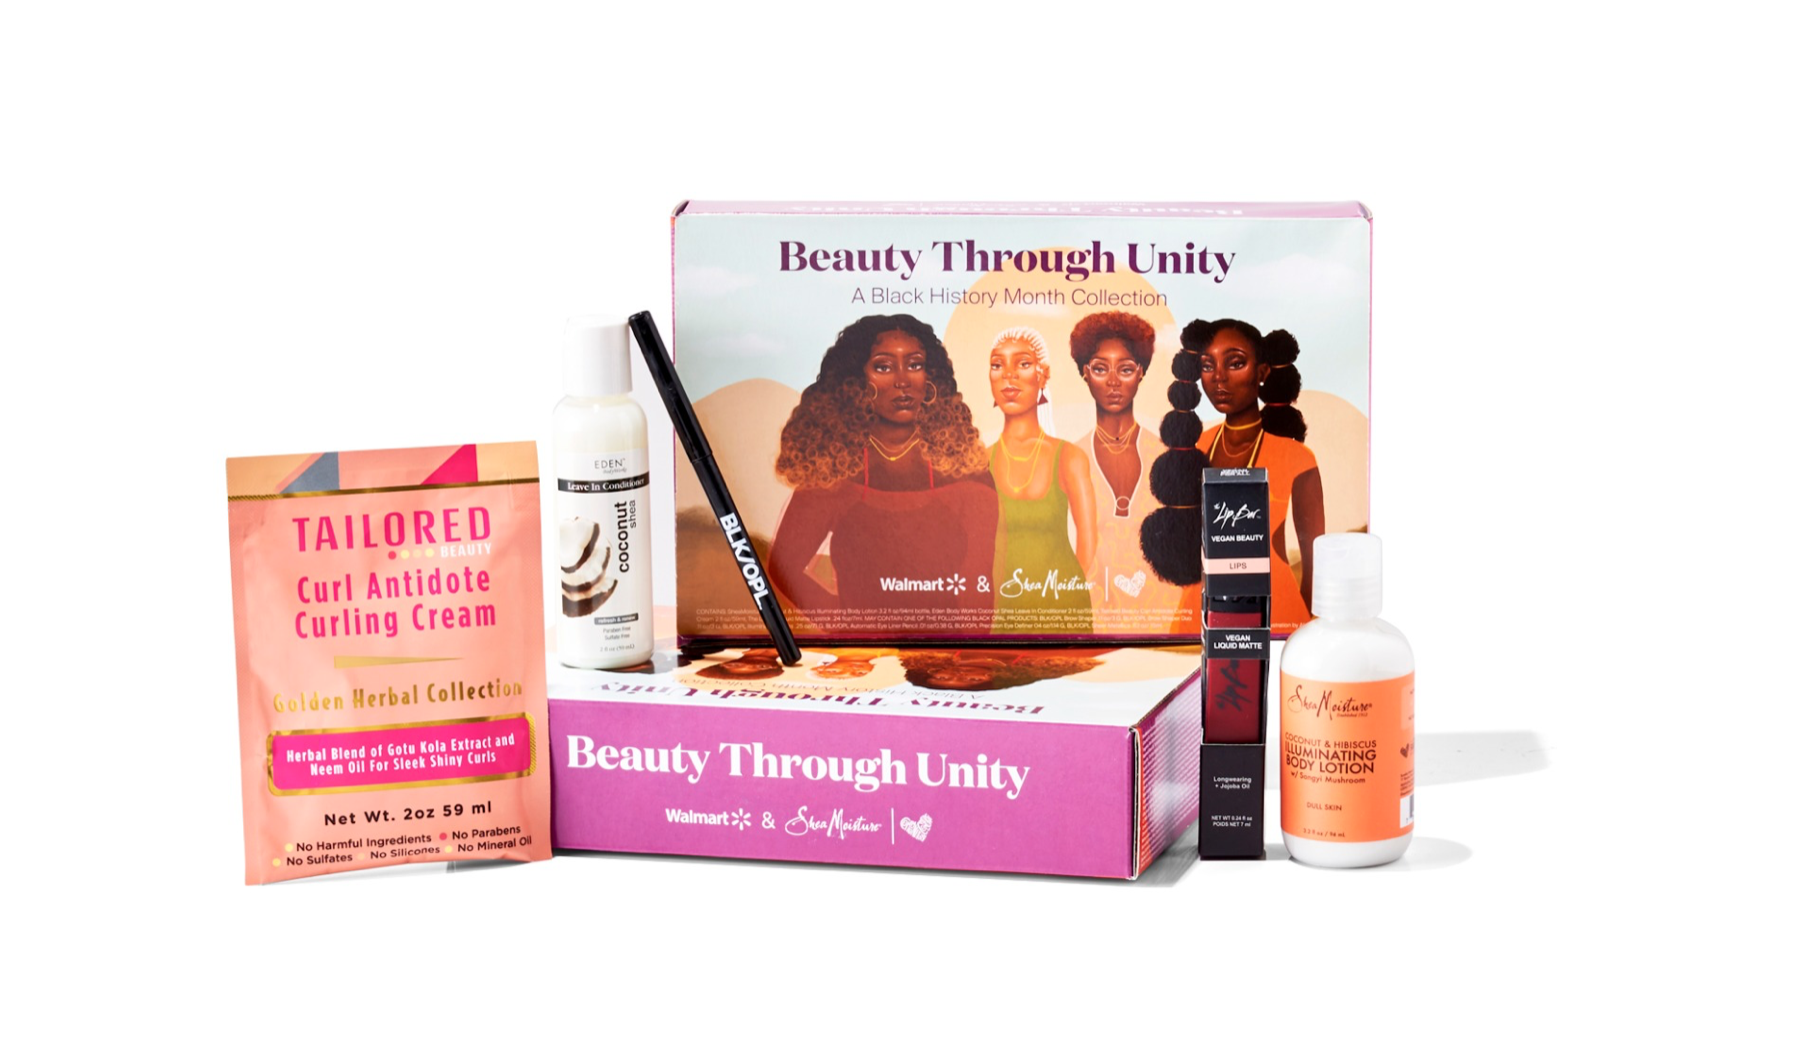 Walmart Beauty Through Unity A Black History Month Collection – On Sale Now + Full Spoilers